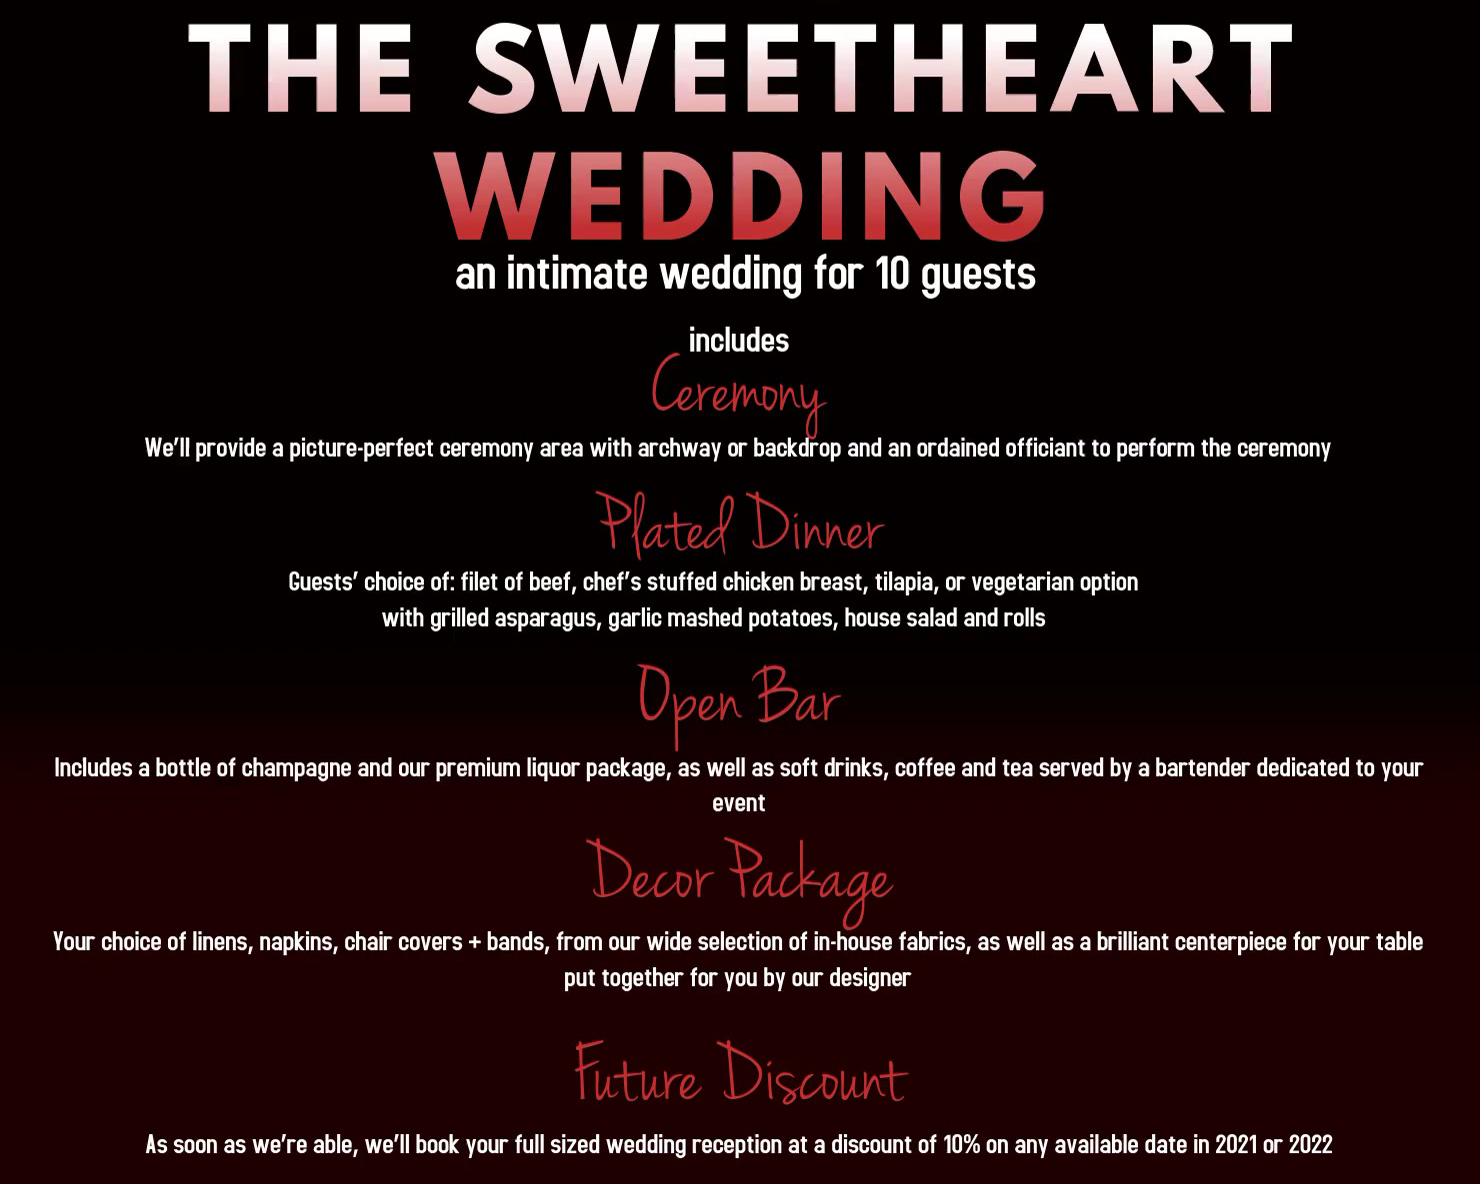 Sweetheart Wedding Package (Up to 10 people)